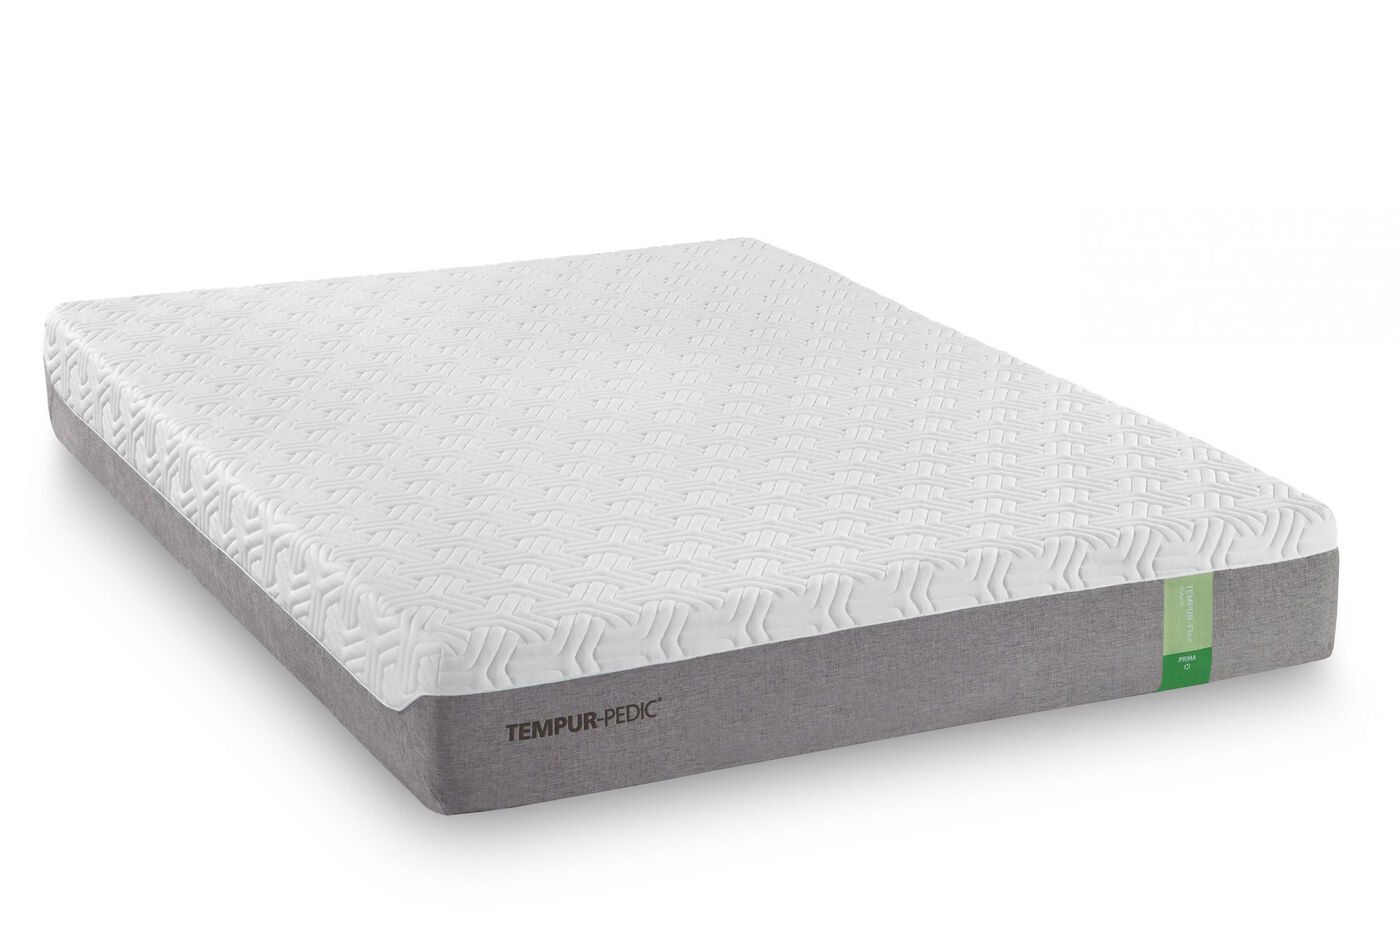 Shop Tempur-Pedic mattresses, pillows, slippers, sleep systems, and accessories at the official Tempur-Pedic website. See limited time offers and promotions.